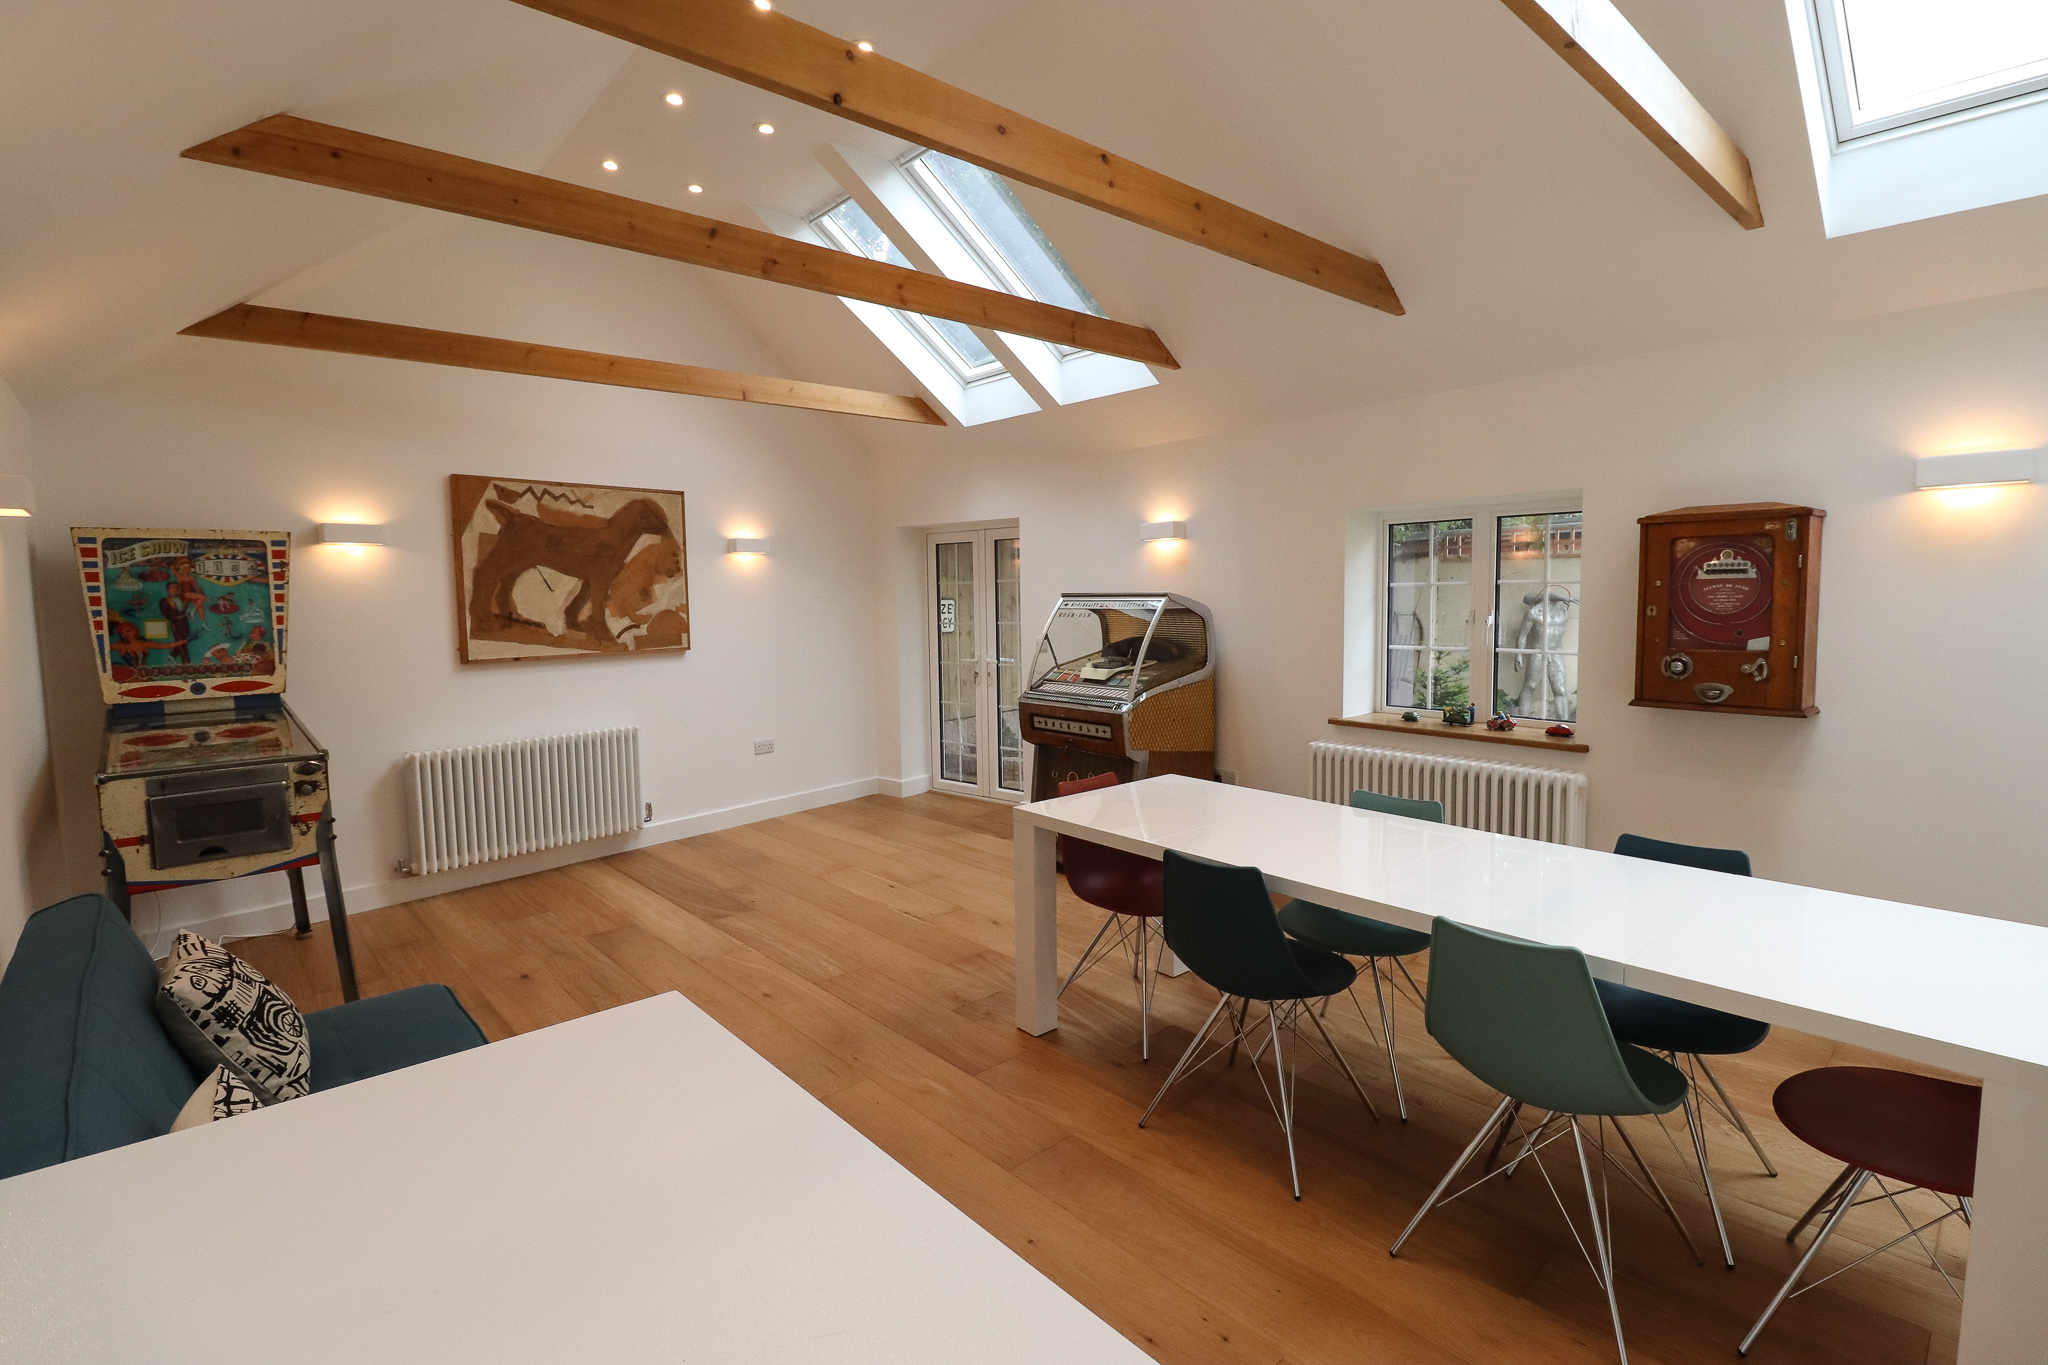 CAMBERWELL, OPEN PLAN SPACE, EXPOSED BEAMS, VINTAGE ARCADE, FAMILY HOME.jpg